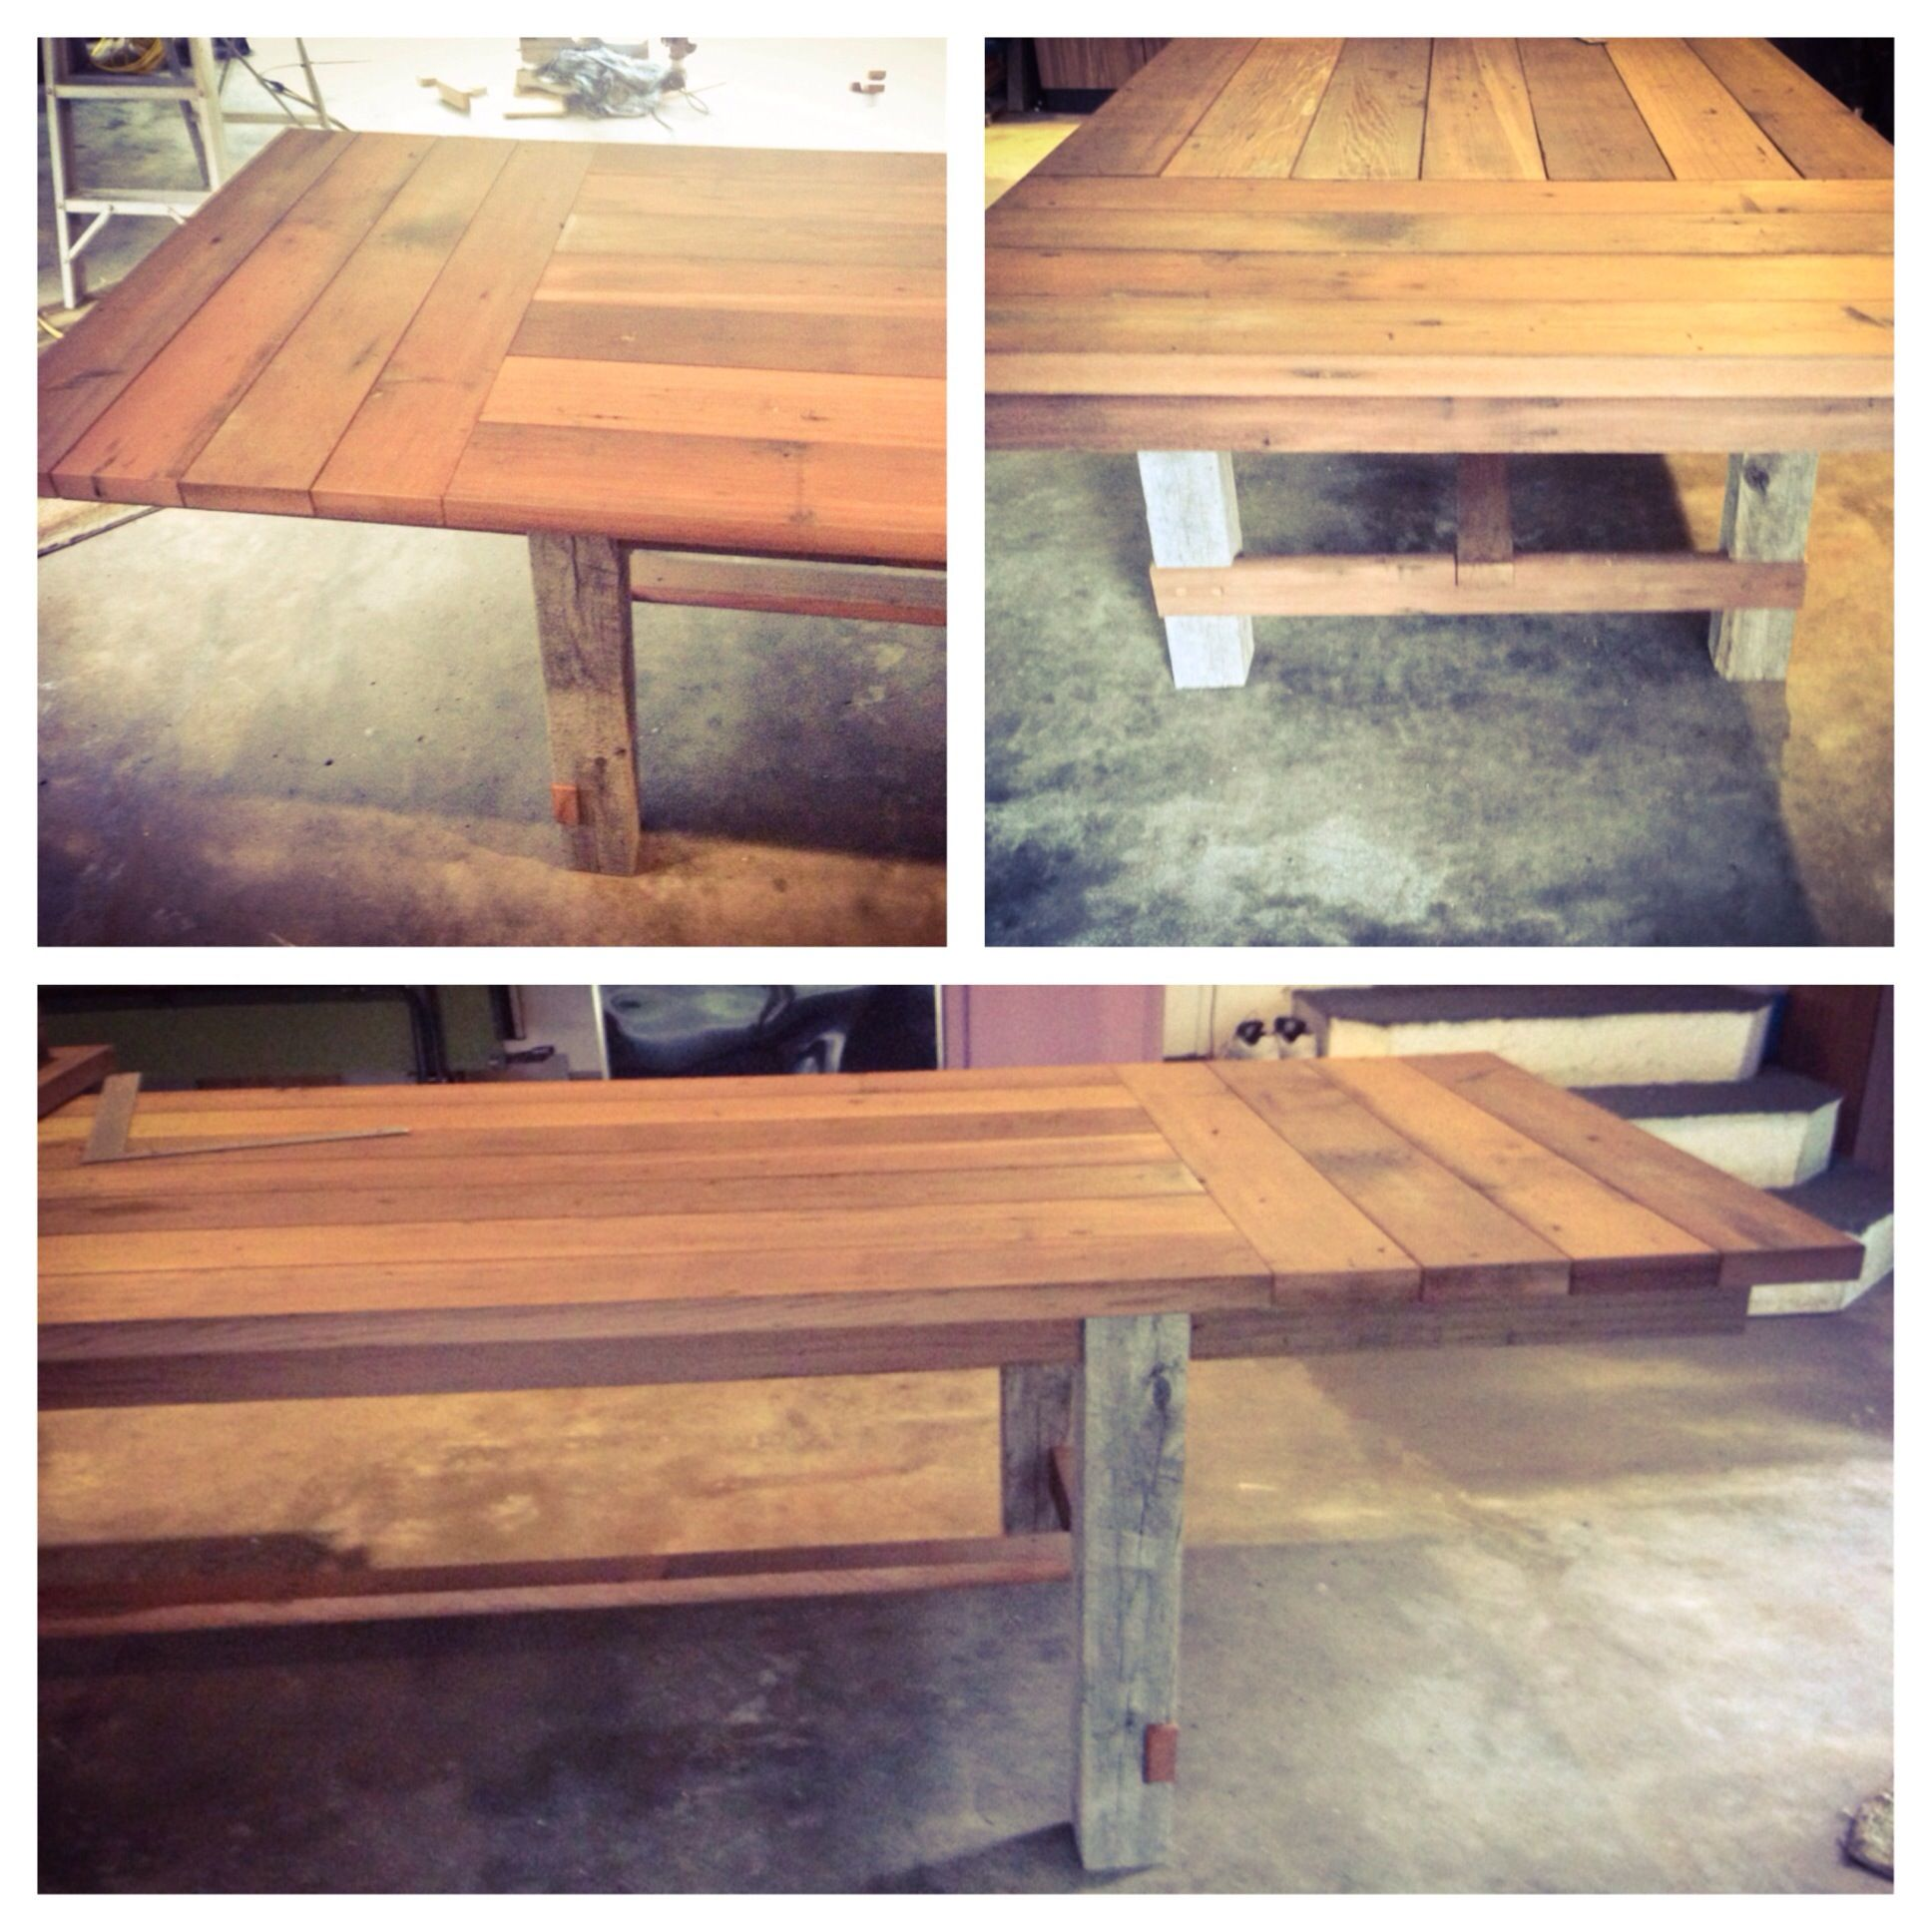 Ana White 12 Ft Farmhouse Table With Extensions Reclaimed Wood Diy Projects Farmhouse Table Coffee Table Farmhouse Farm Table Dining Room